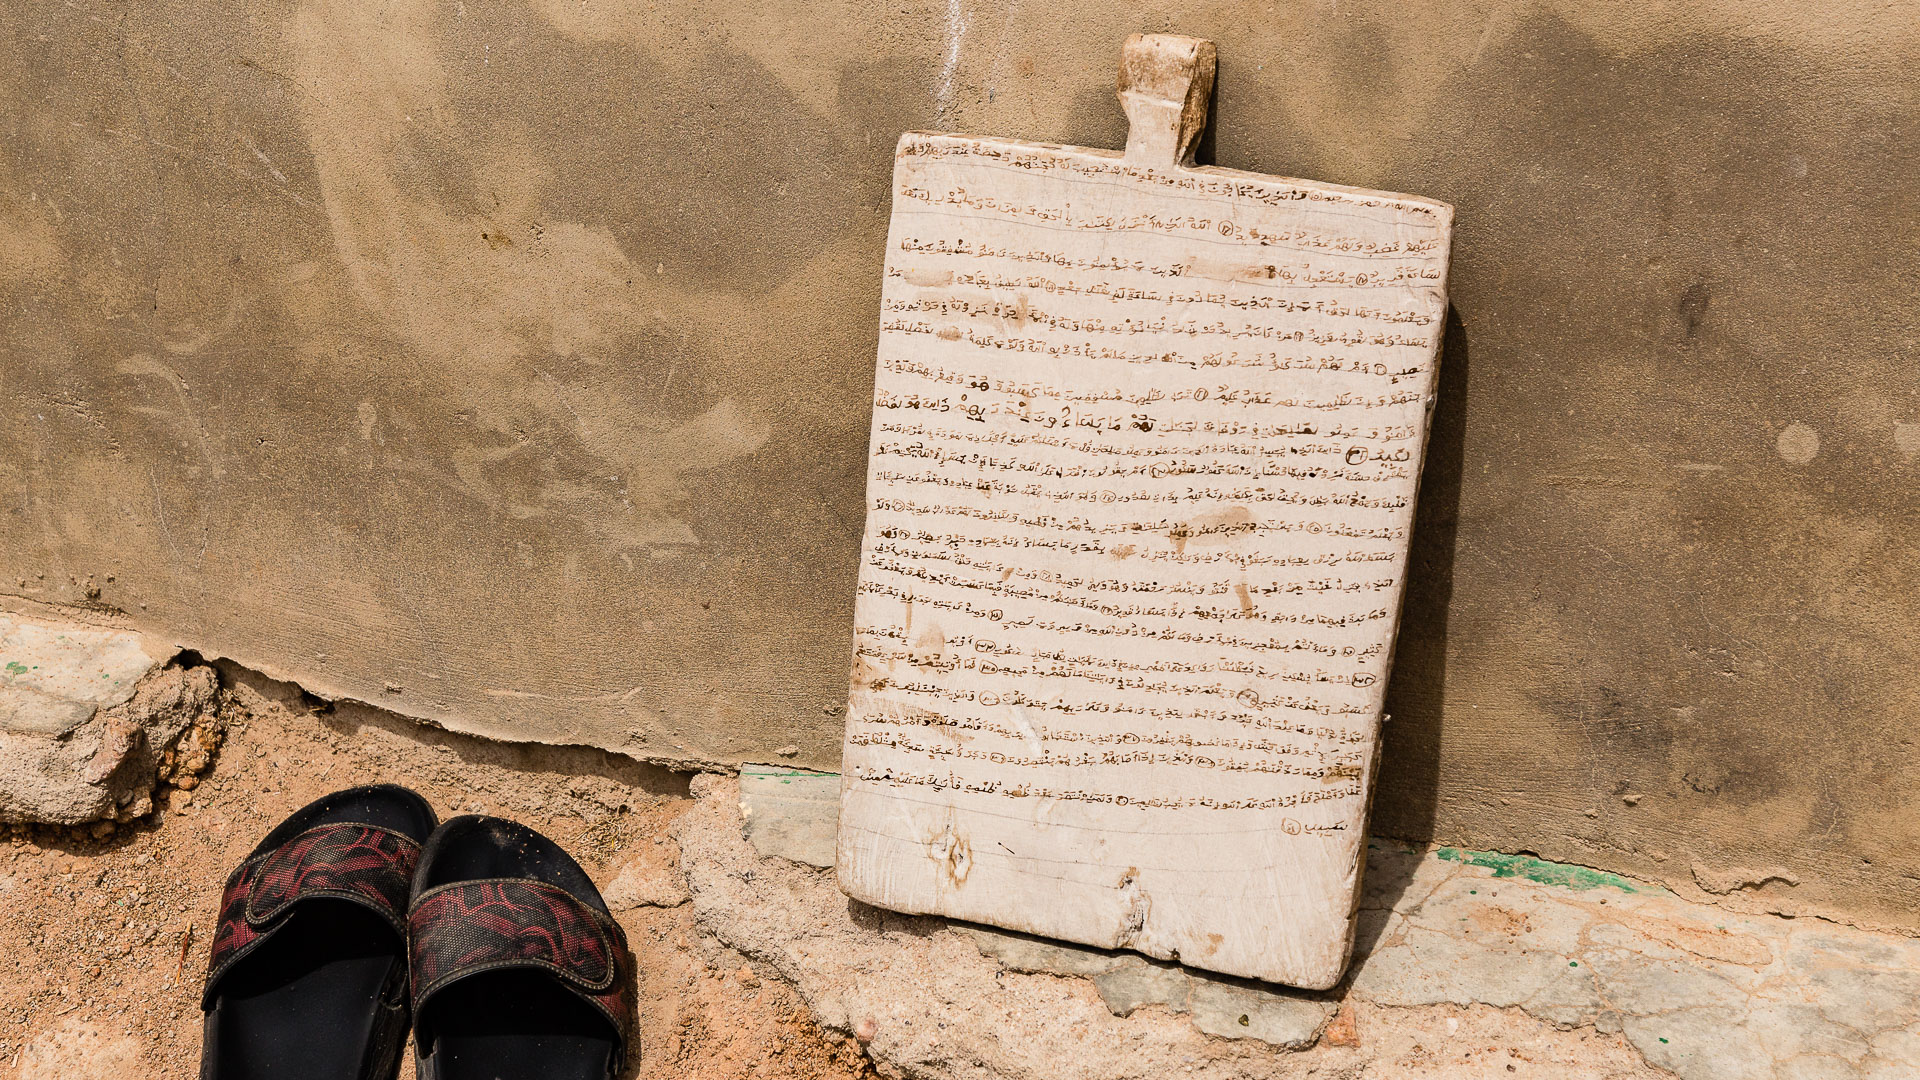 A wooden tablet used to practice writing and memorizing Qur'anic verses stands outside a mosque.